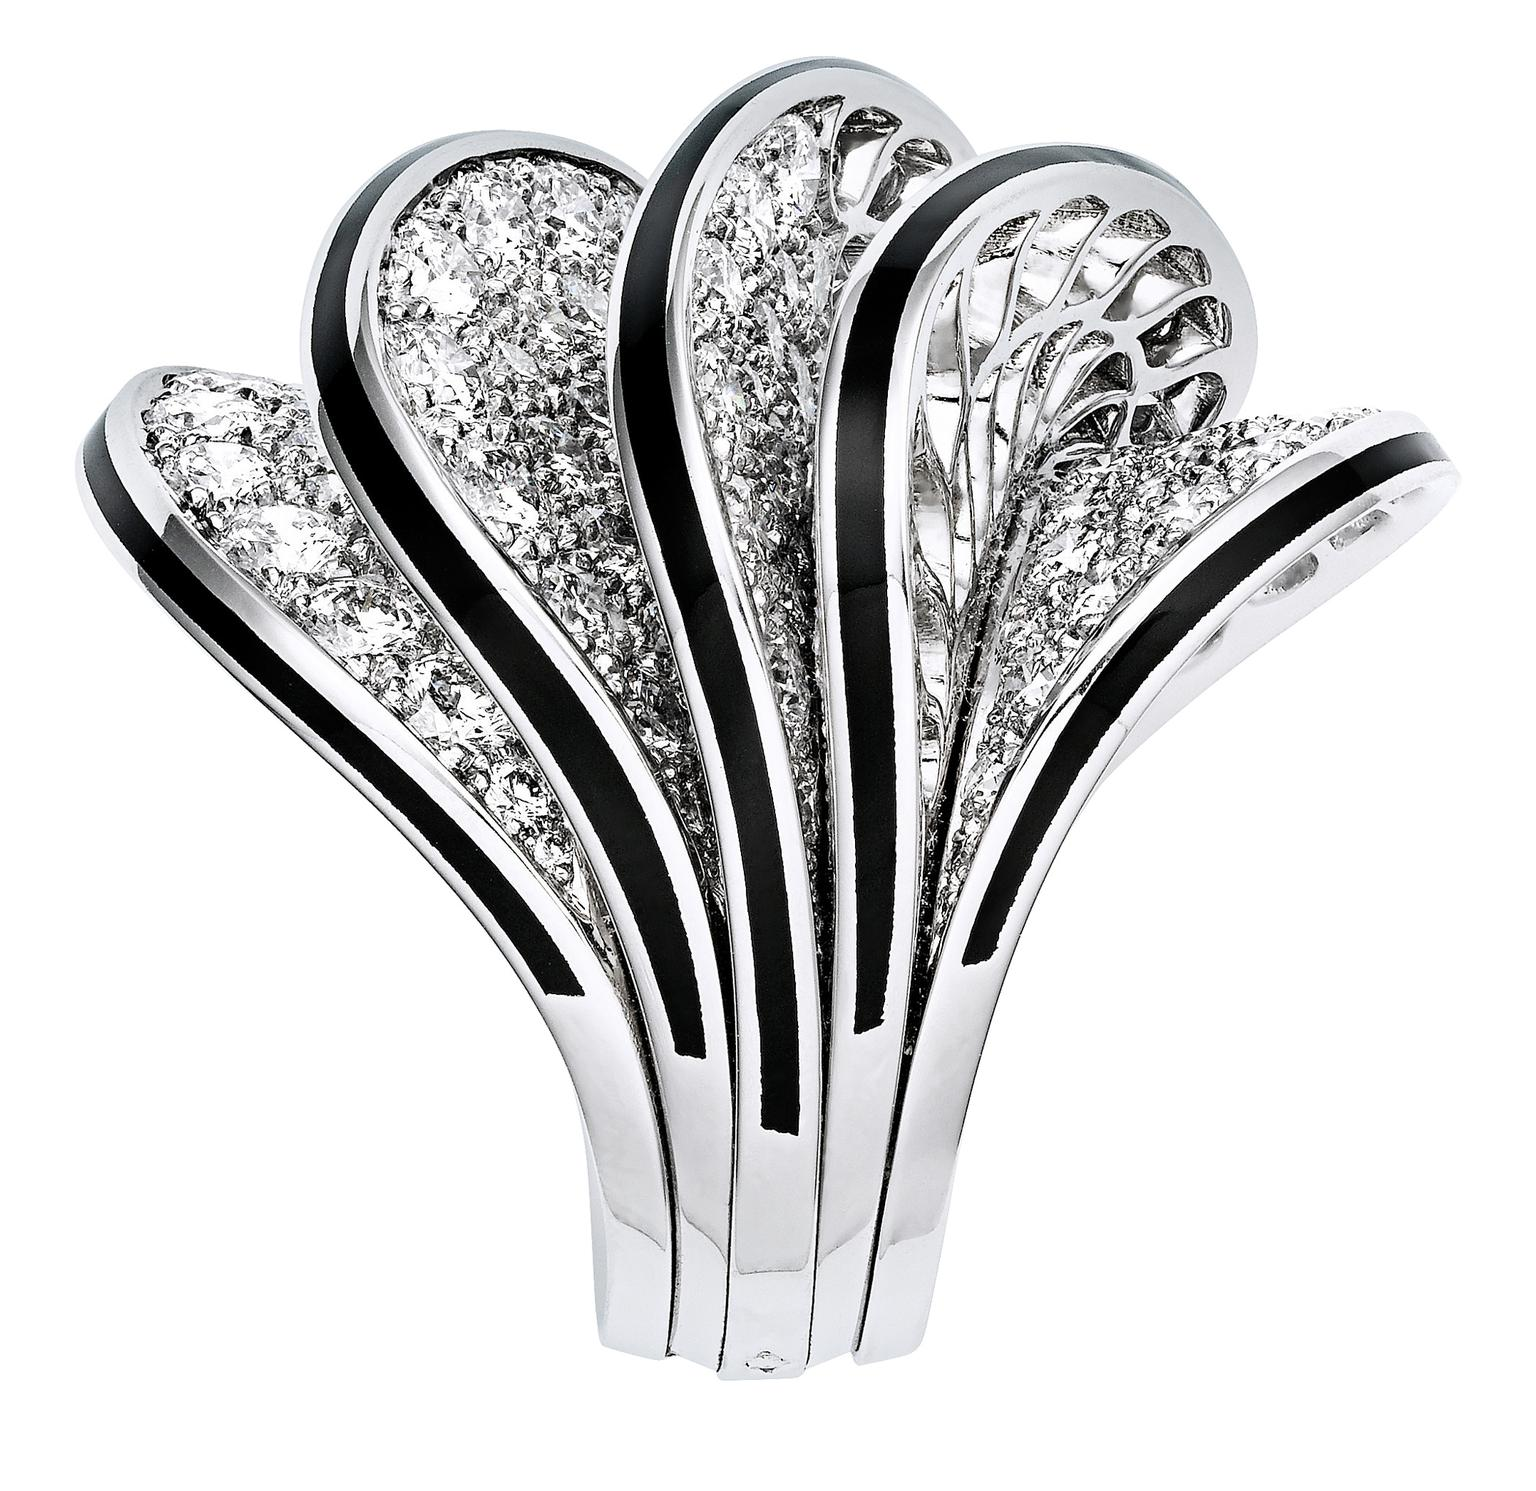 Cartier Paris Nouvelle Vague Glamour ring_20130911_Zoom